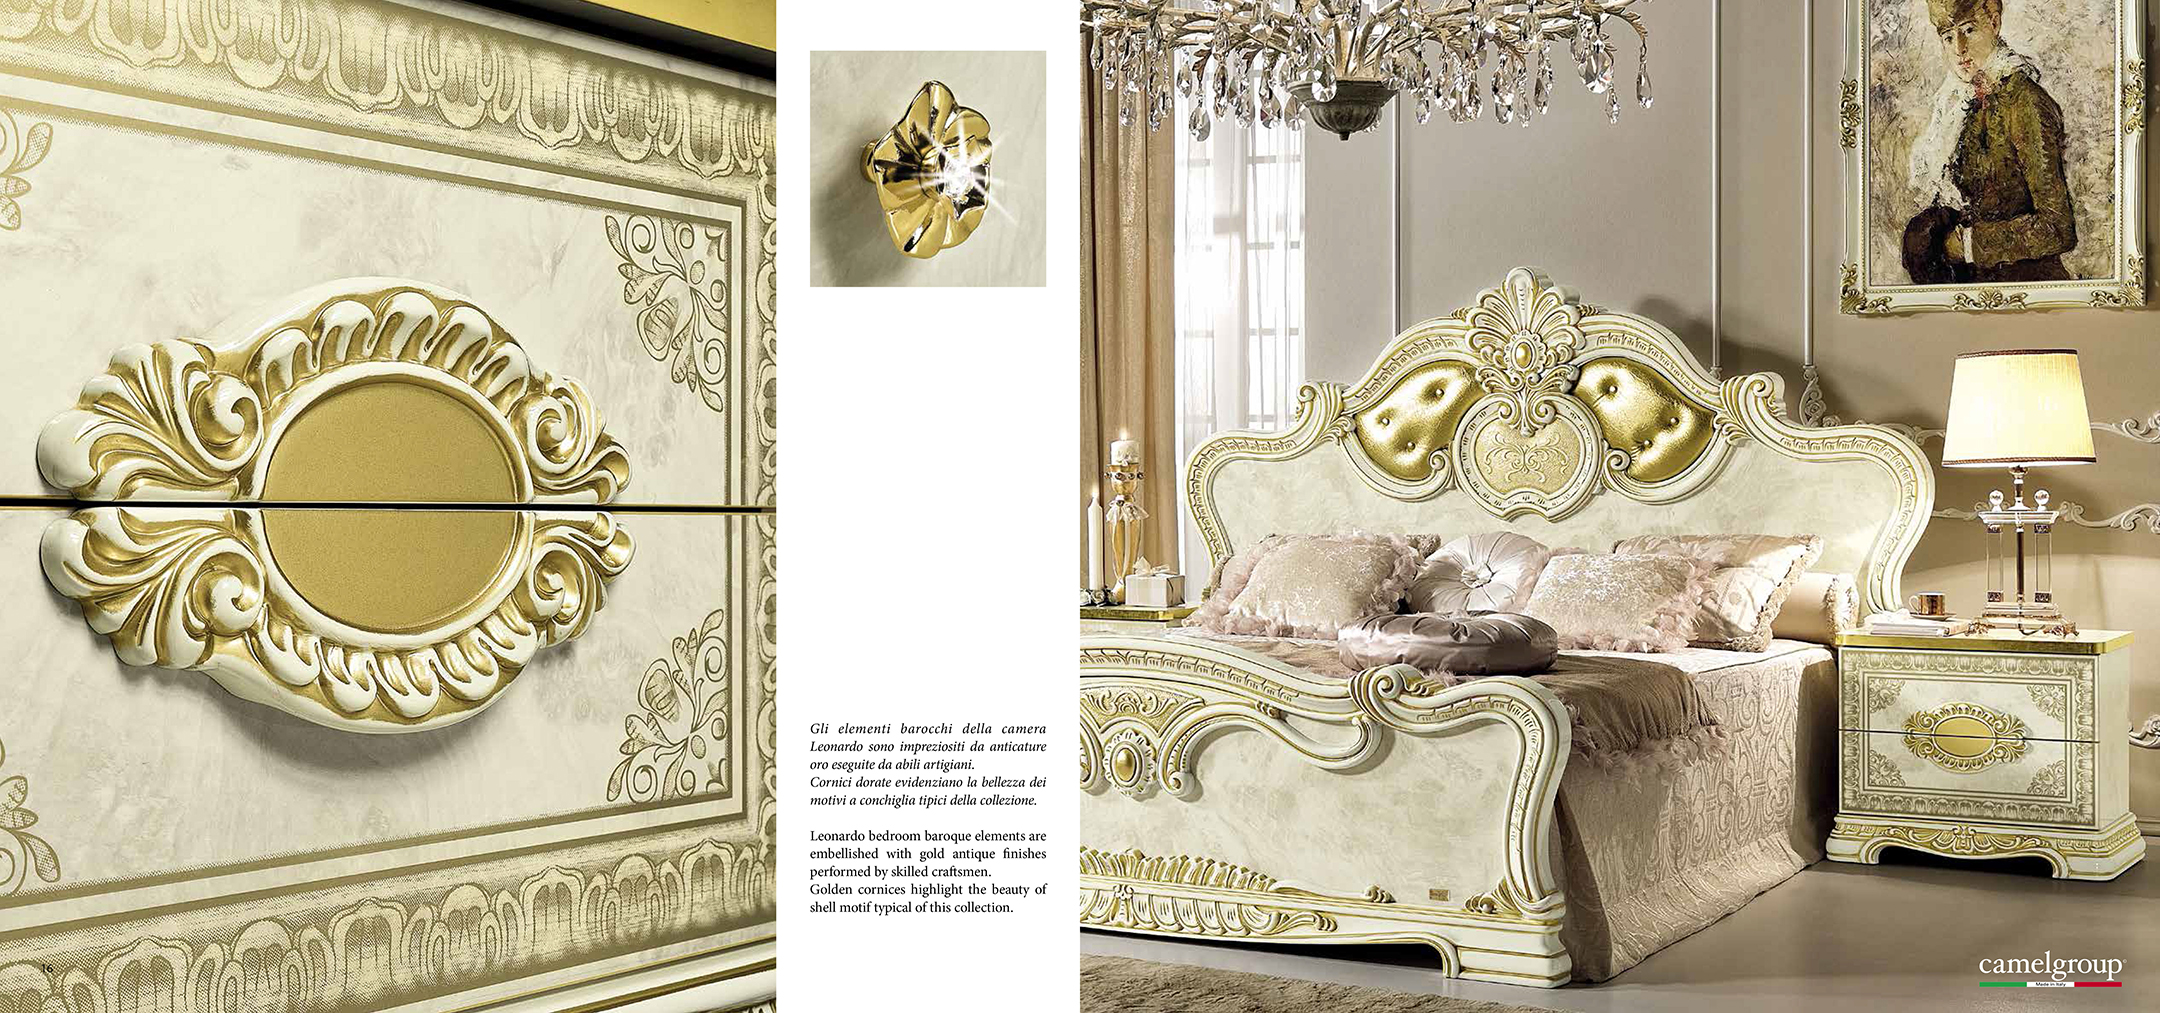 classical italian bedroom set. Leonardo Bedroom Additional Items. Collections Camel Gold Collection, Italy Items Classic Classical Italian Set